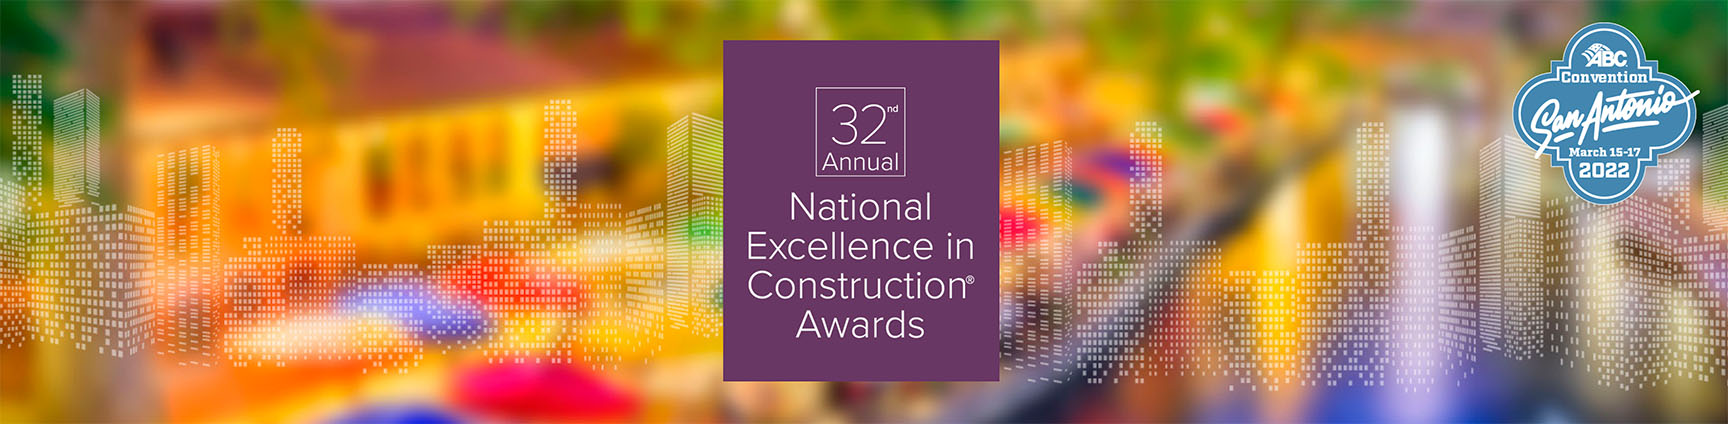 Banner with the words 32nd National Excellence in Construction Awards, ABC San Antonio Convention March 15-17 2022